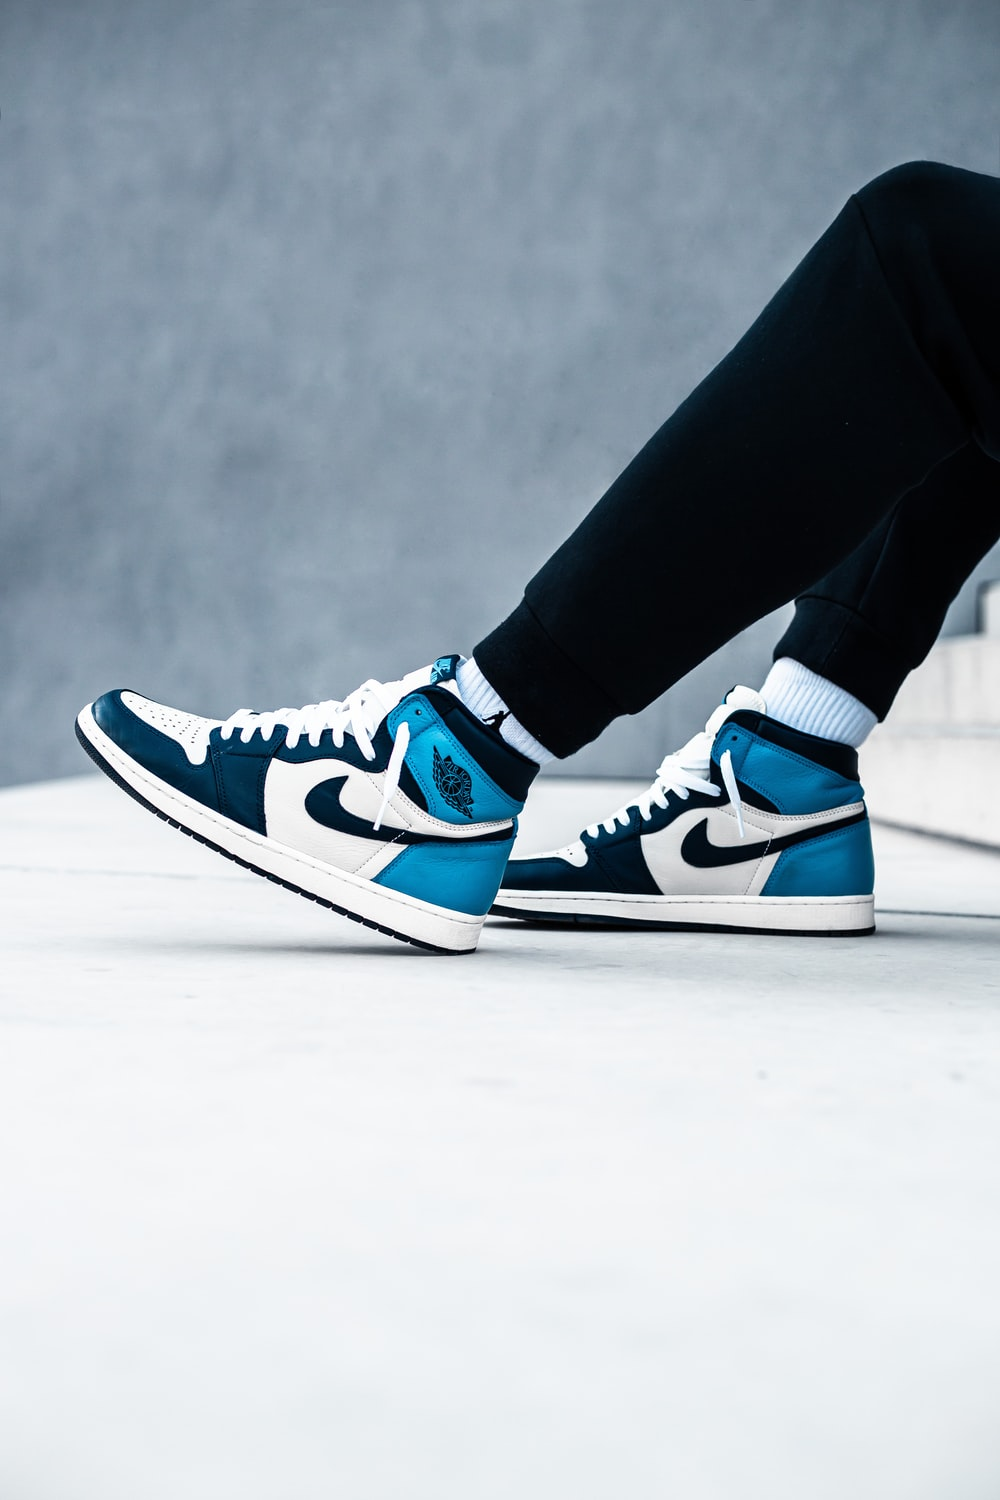 person wearing black pants and blue and white nike sneakers